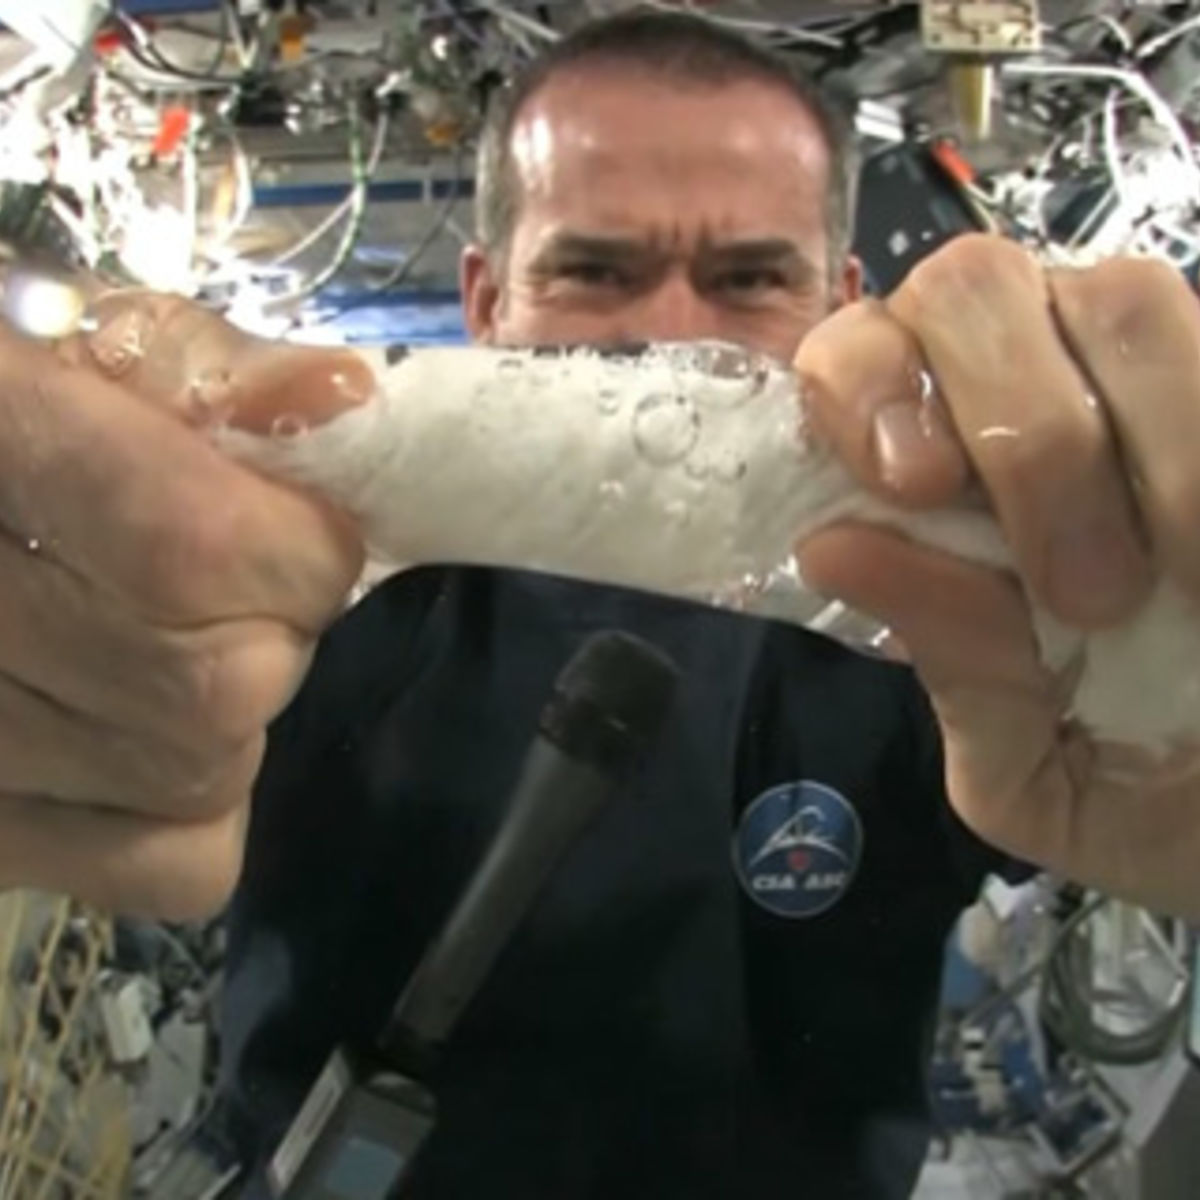 iss_hadfield_washcloth.jpg